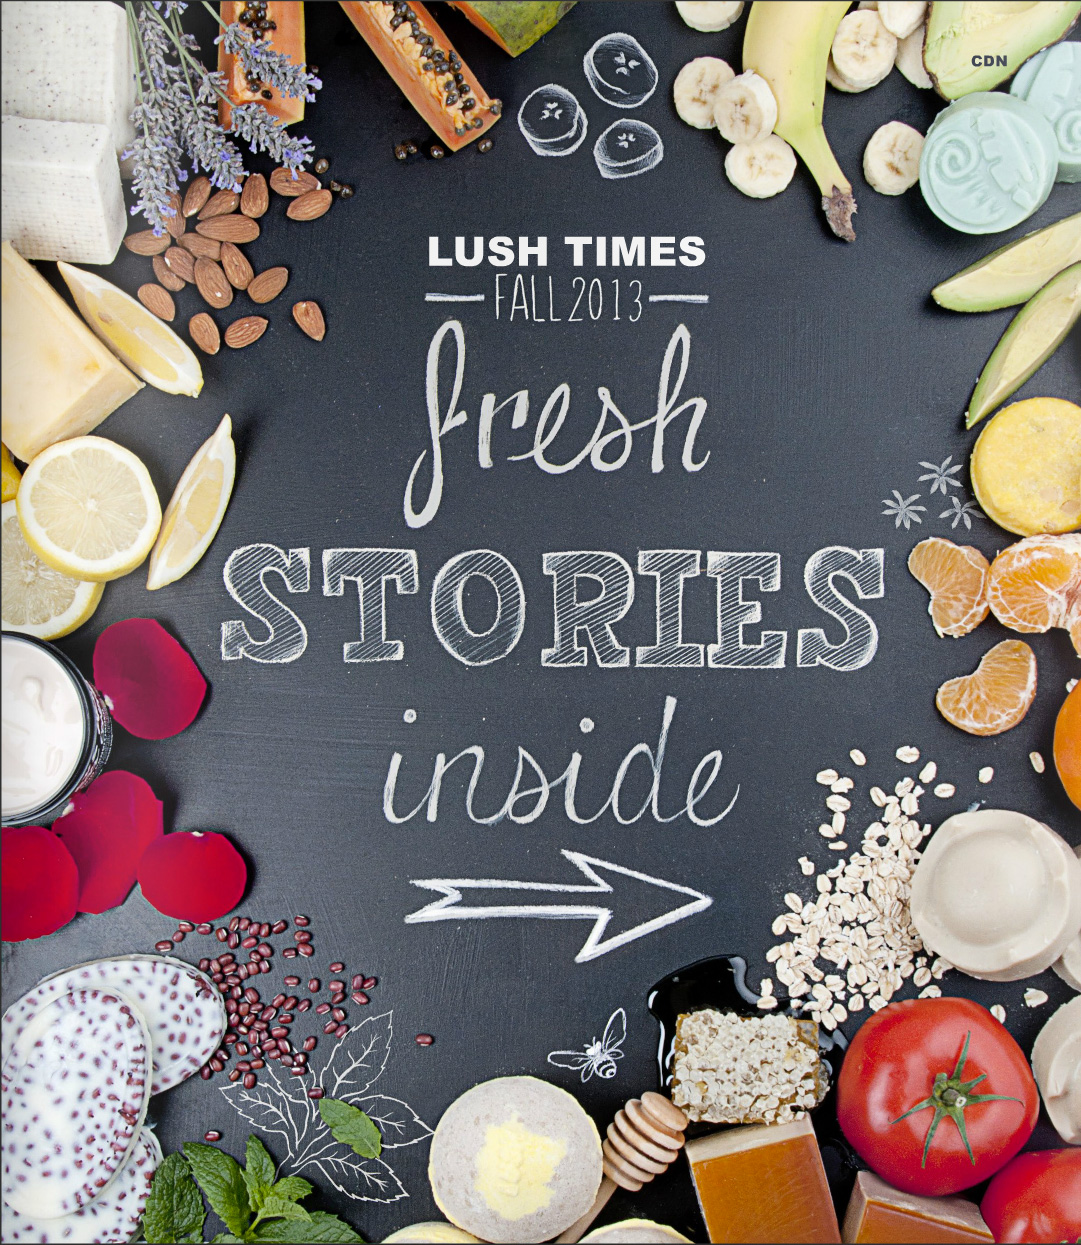 LUSH Times Cover Design + Photography